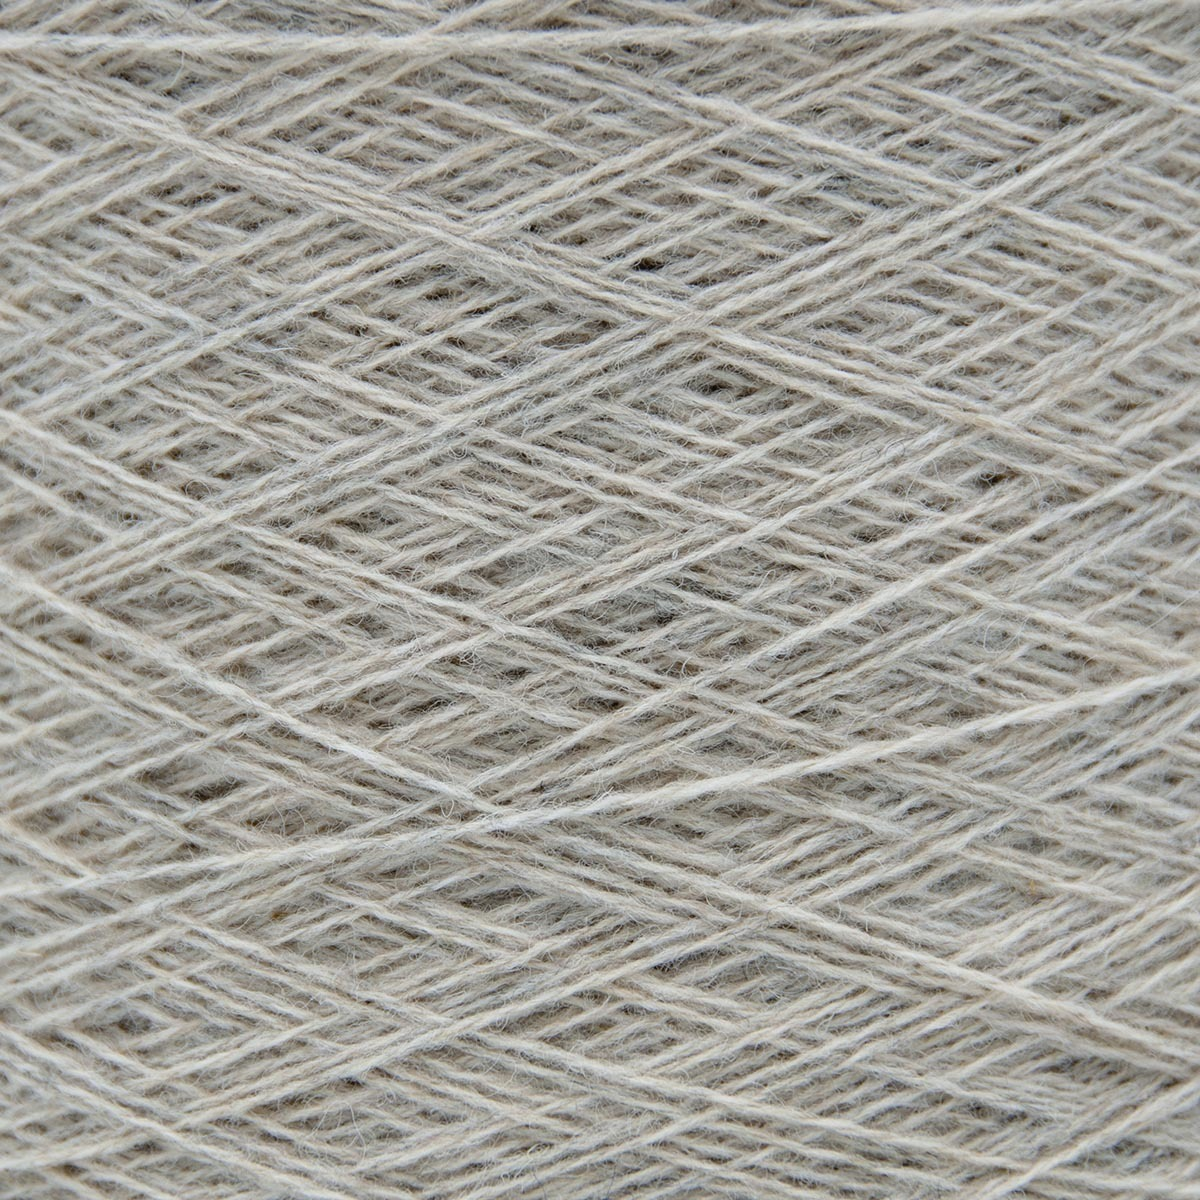 Knoll Yarns Supersoft - 292